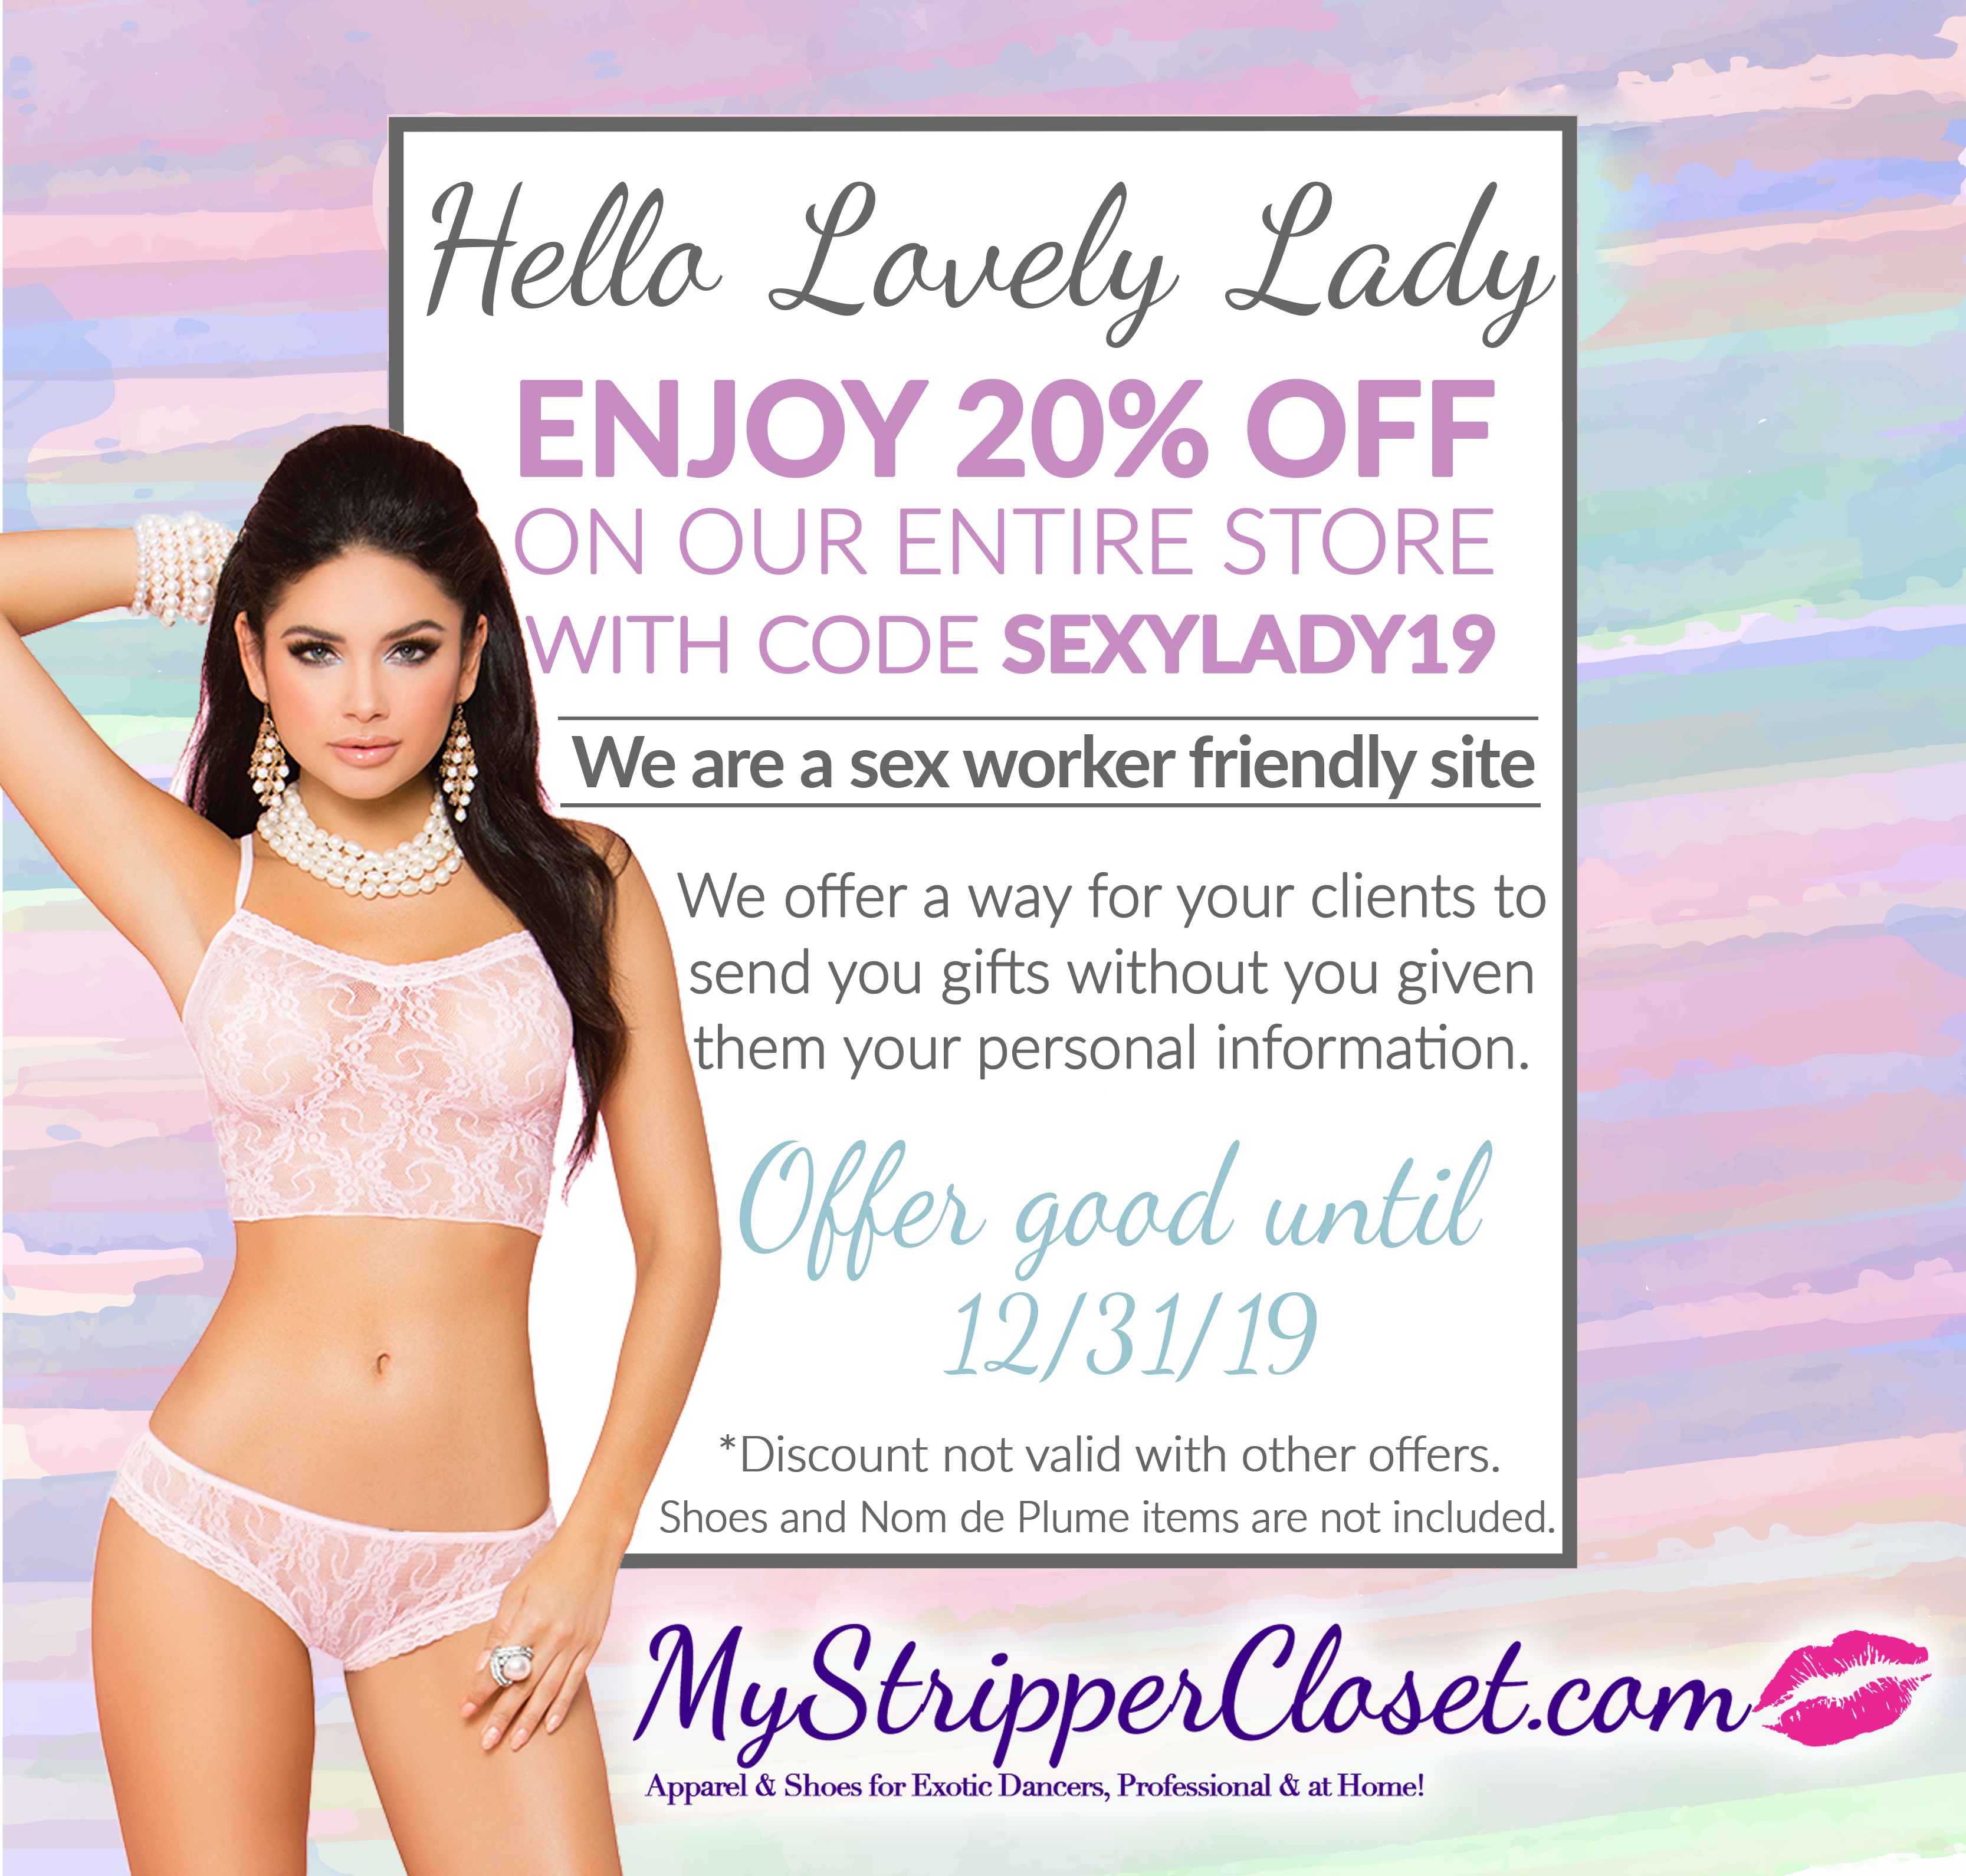 coupon-email-for-girls-mystrippercloset.com.jpg